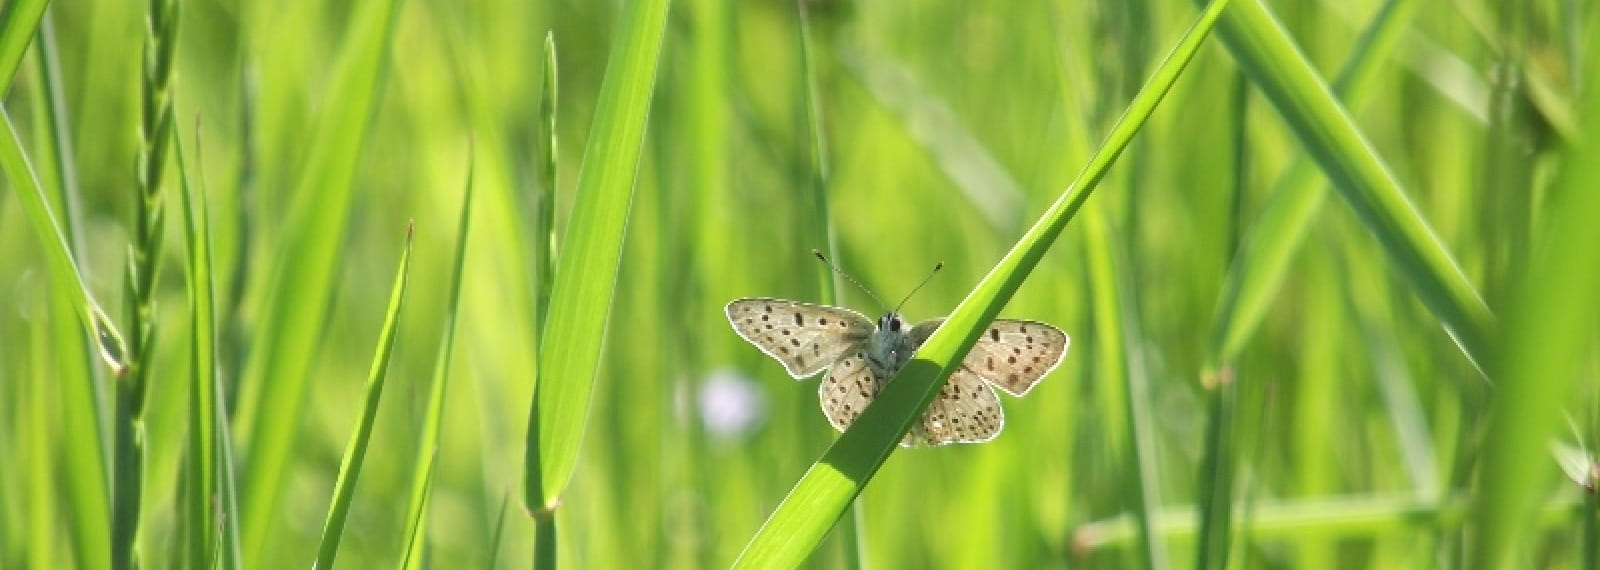 Papillons-Heodes tityrus - Stage CPIE brenne-Berry